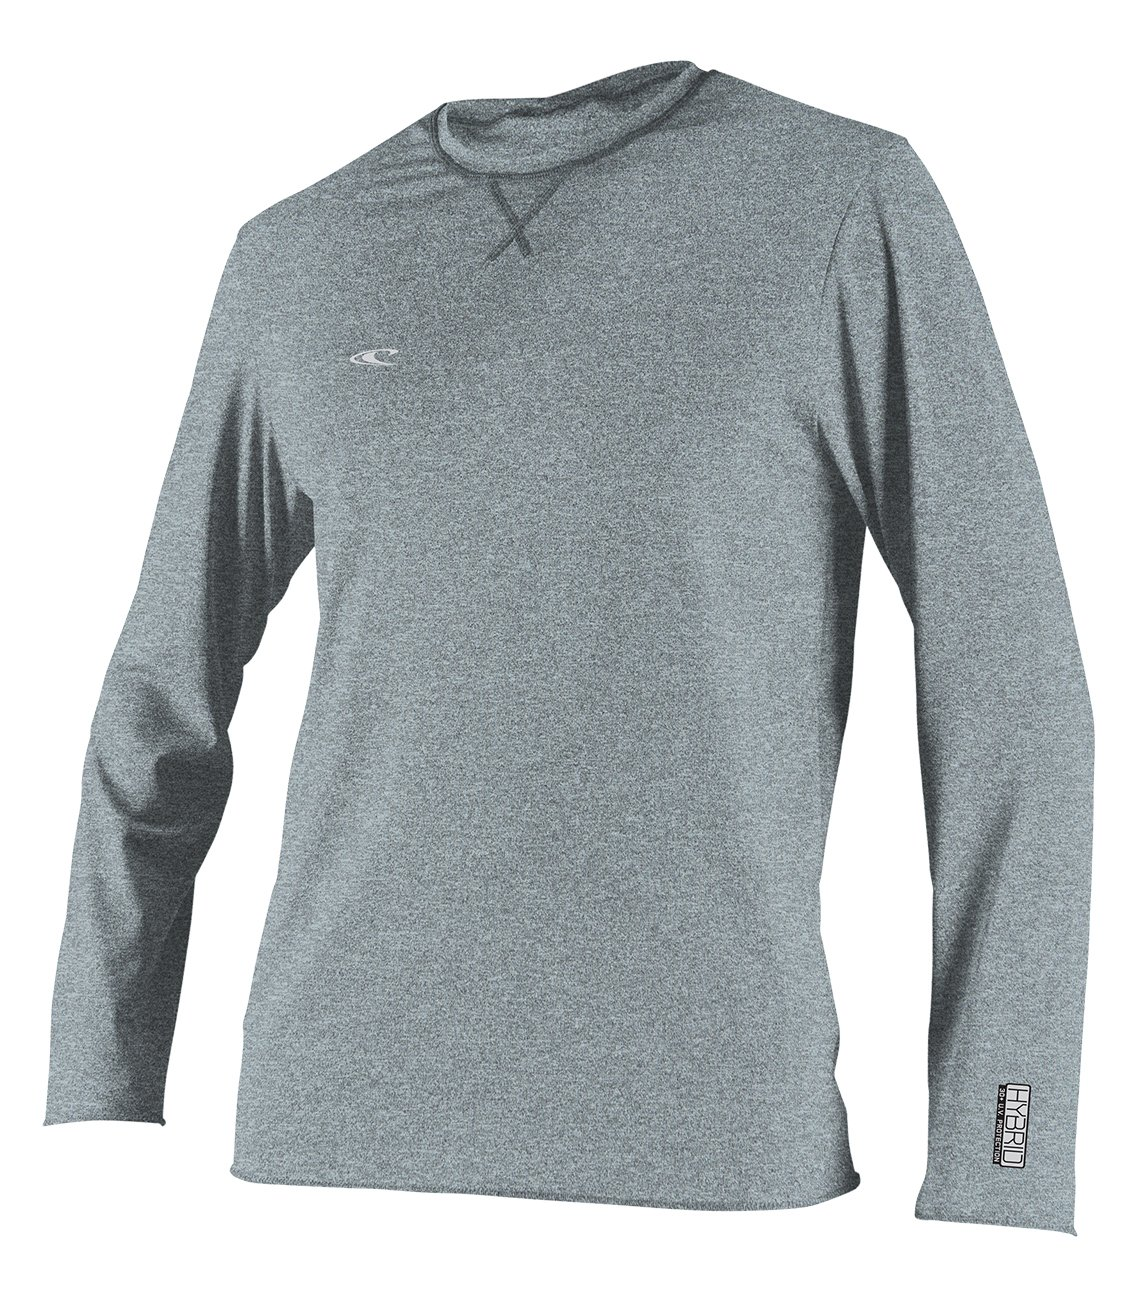 O'Neill Wetsuits Men's Basic Skins UPF 50+ Long Sleeve Sun Shirt, Hybrid Cool Grey, Small